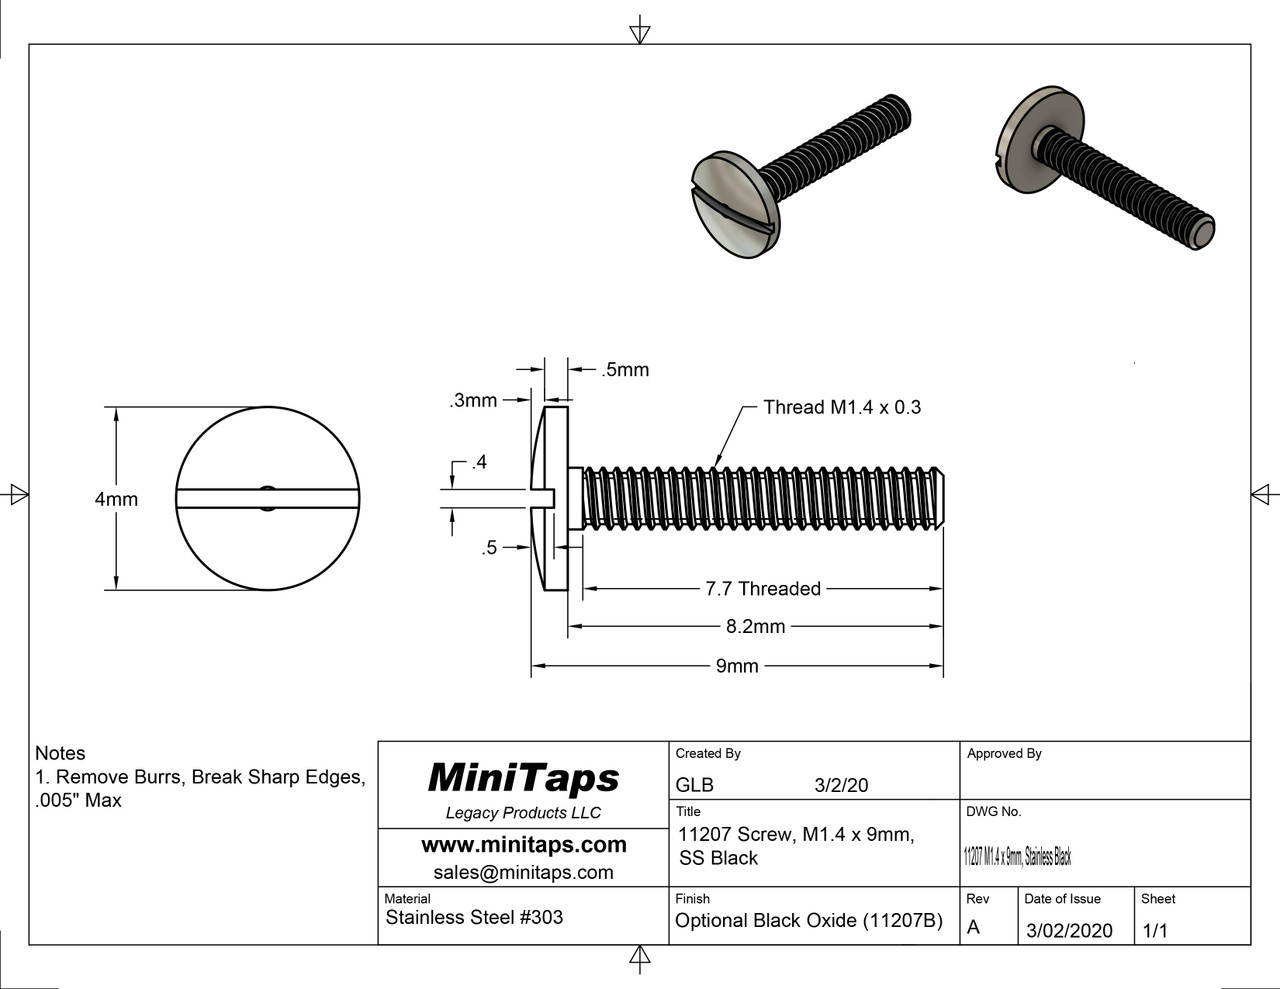 Machine Screw Special  Thread M1.4, Pitch .30mm, Head Diameter 4.0mm (Large Head diameter), Threaded Length 8.2mm (Max), Overall Length 9.0mm  Material Stainless Steel, Finish Color Black Oxide  Price is for 100 count package with bulk pricing available. Please contact sales@minitaps.com for bulk pricing pricing or any additional questions or information.